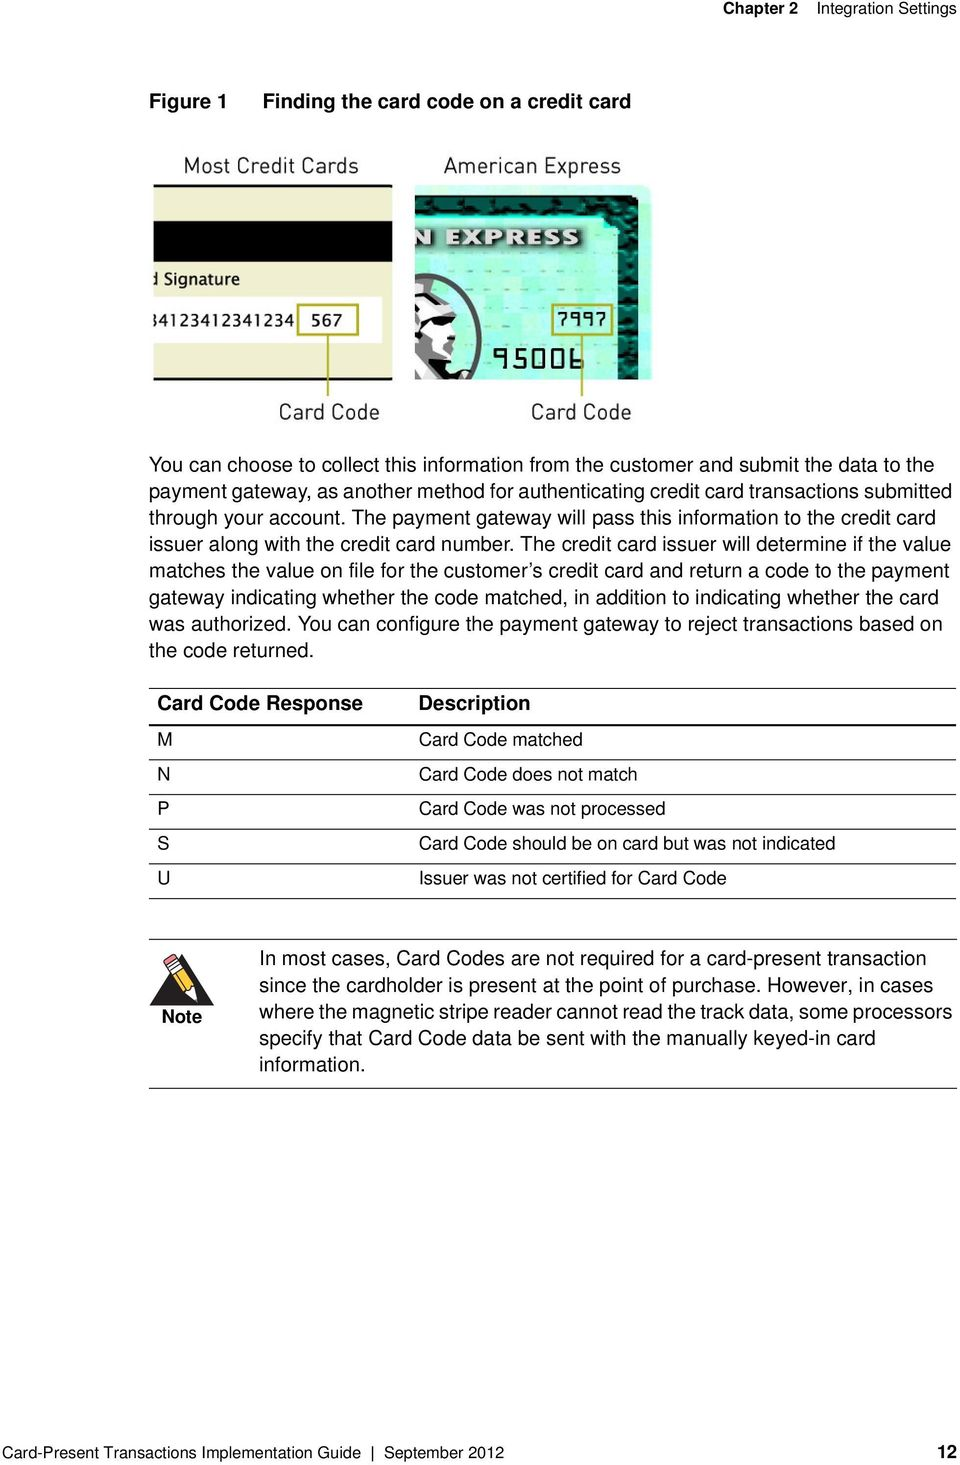 The credit card issuer will determine if the value matches the value on file for the customer s credit card and return a code to the payment gateway indicating whether the code matched, in addition